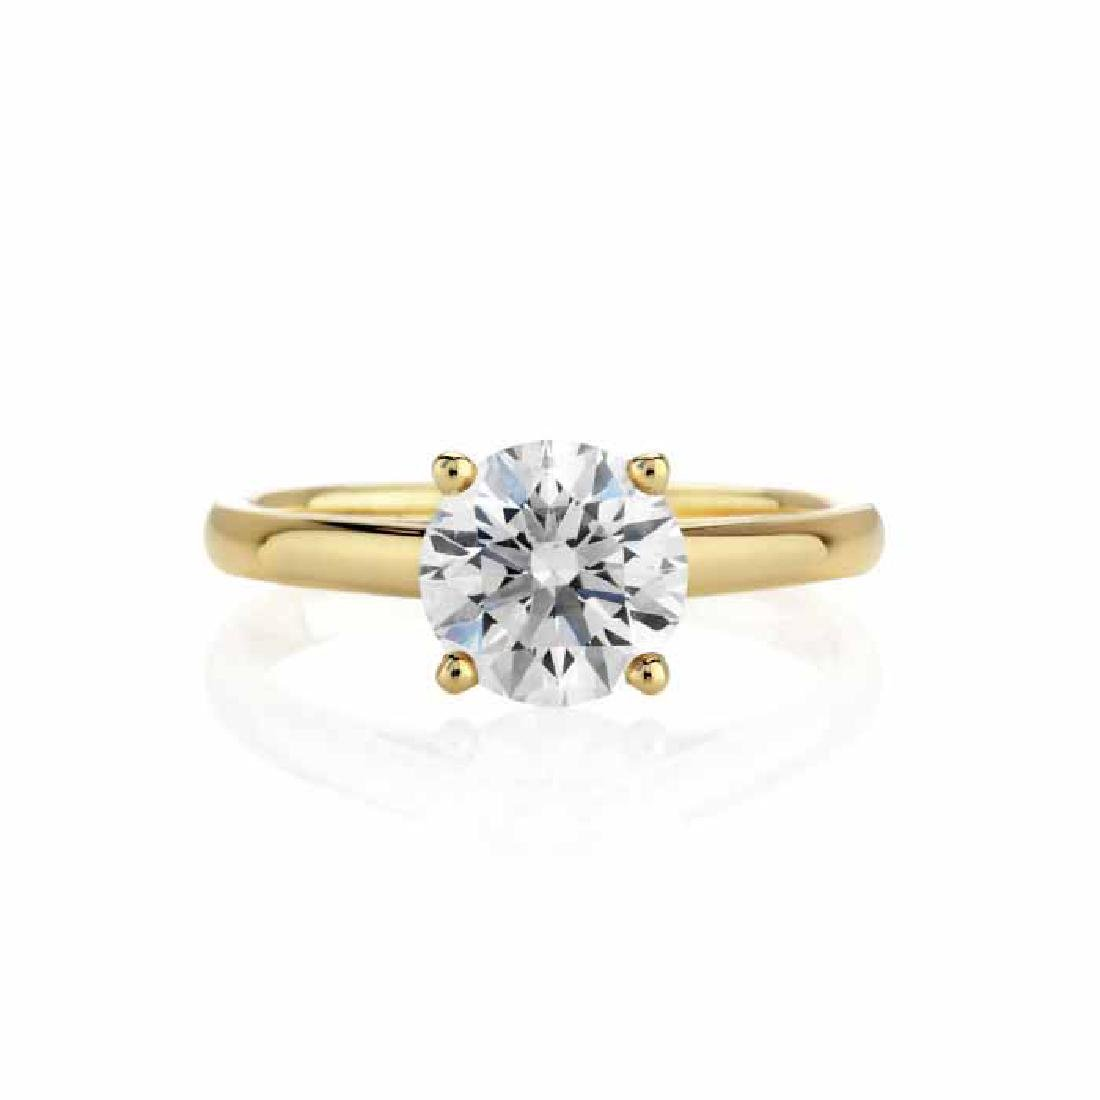 CERTIFIED 0.51 CTW F/I1 ROUND DIAMOND SOLITAIRE RING IN